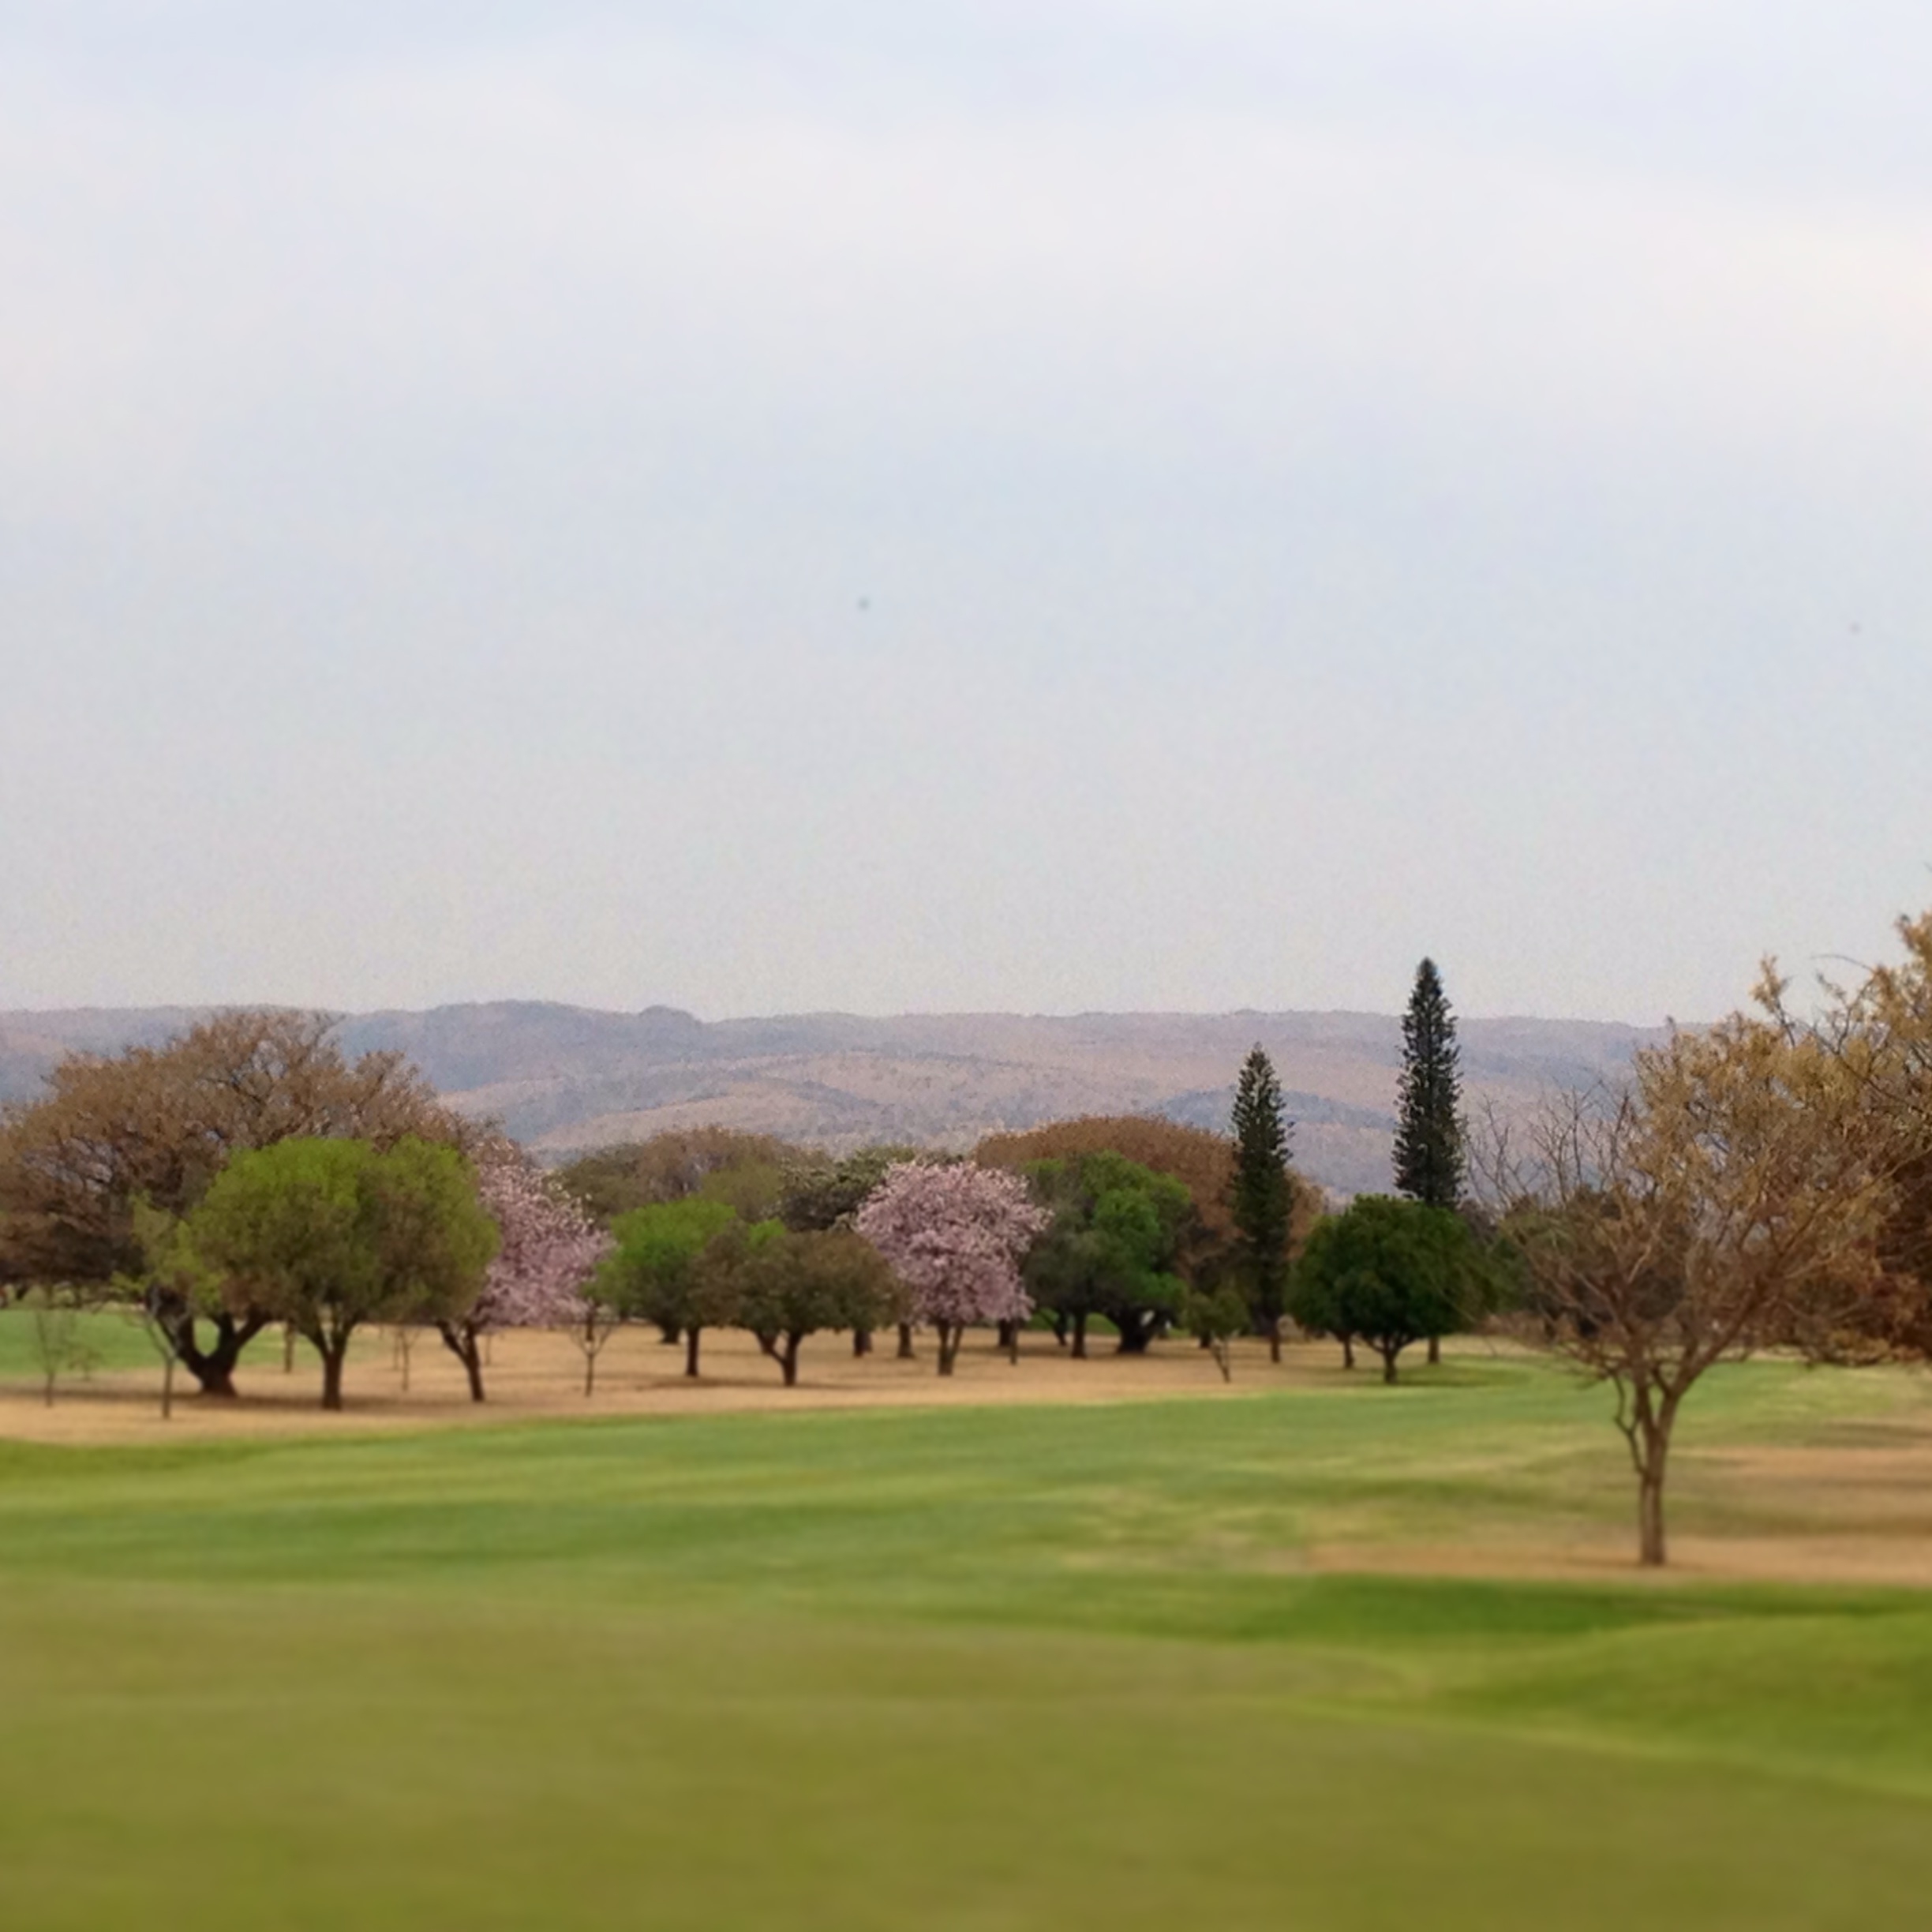 Mooinooi Golf Club, Mooinooi, South Africa